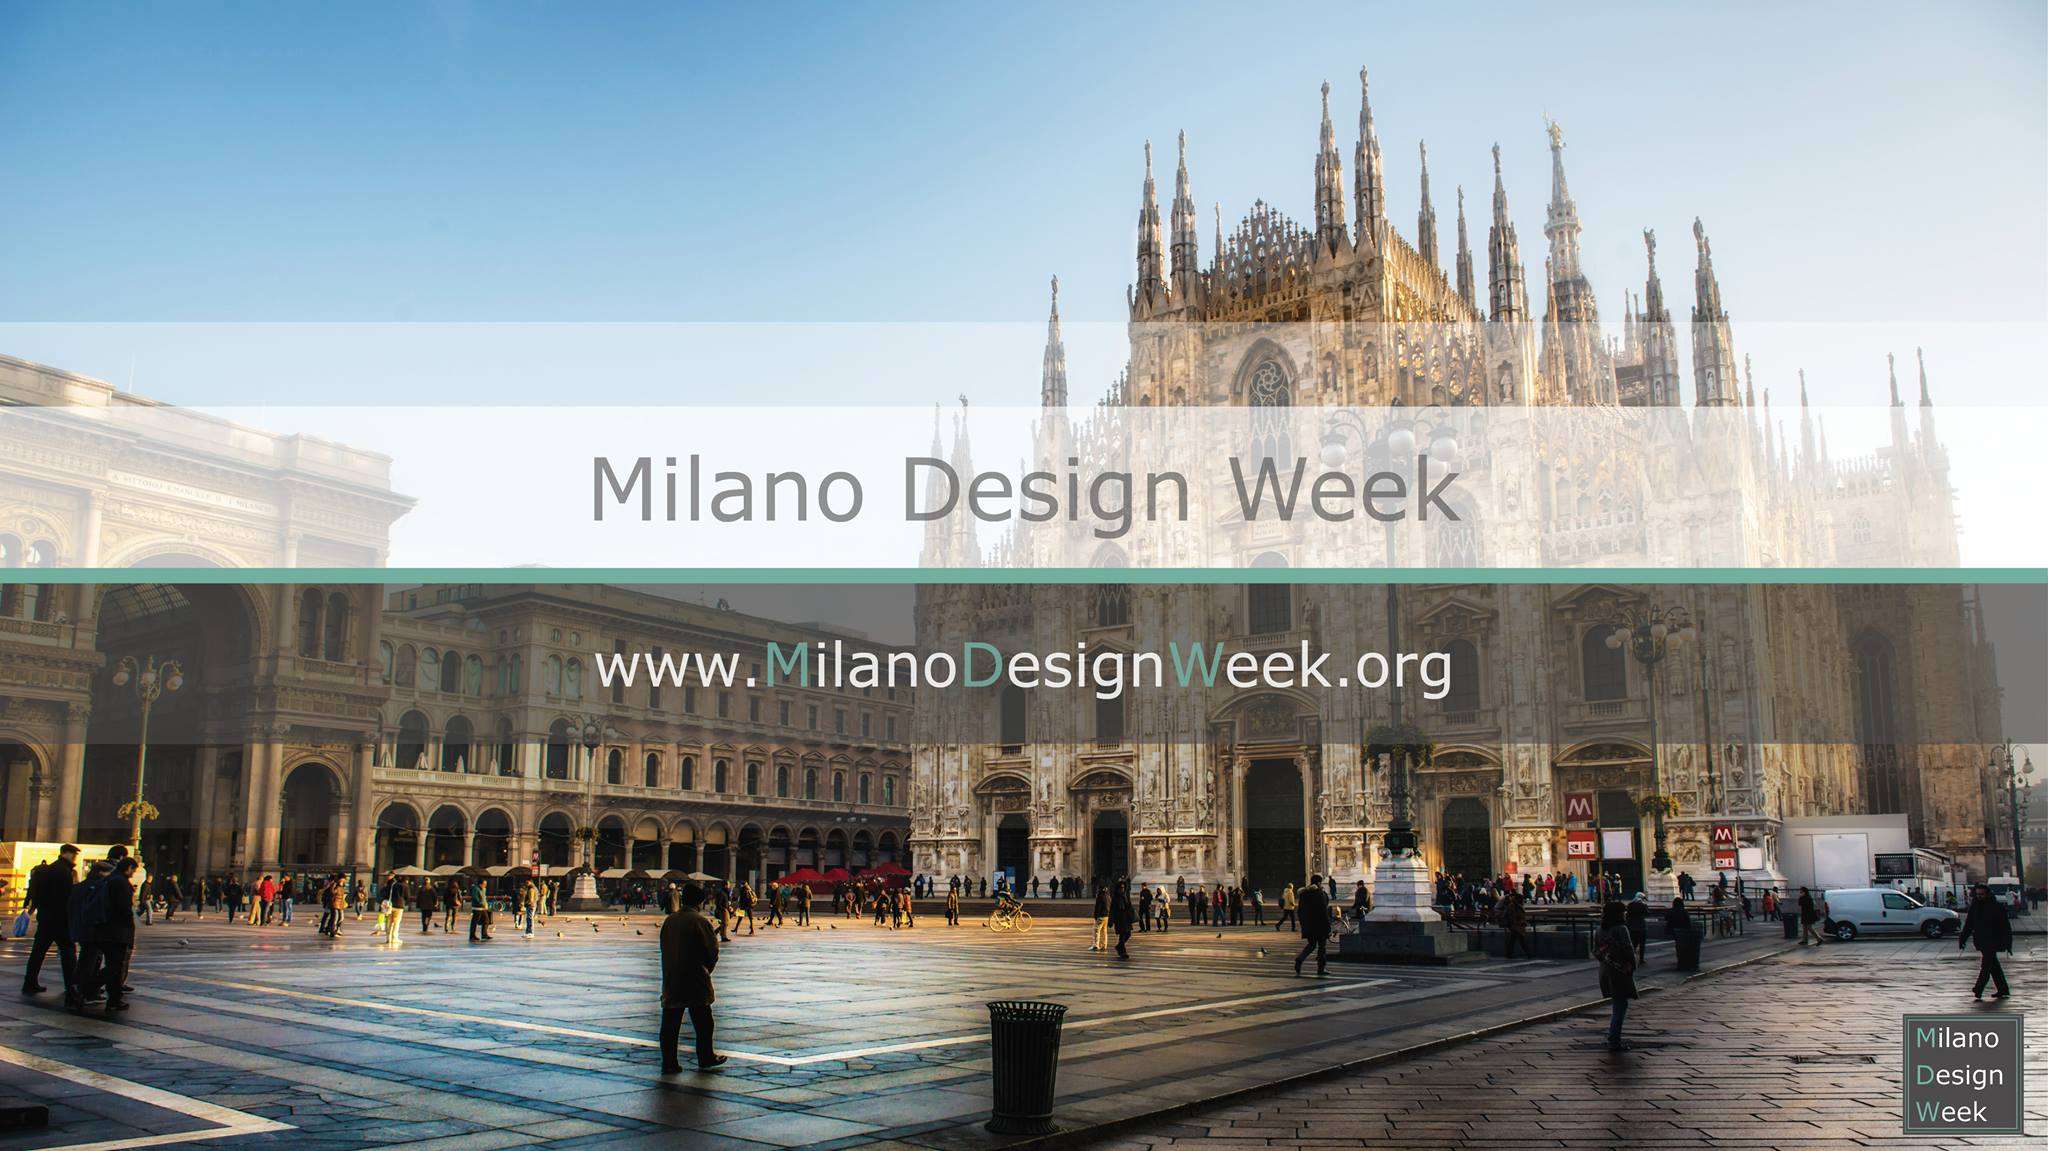 Isaloni 2016: What to see at Tortona Design Week